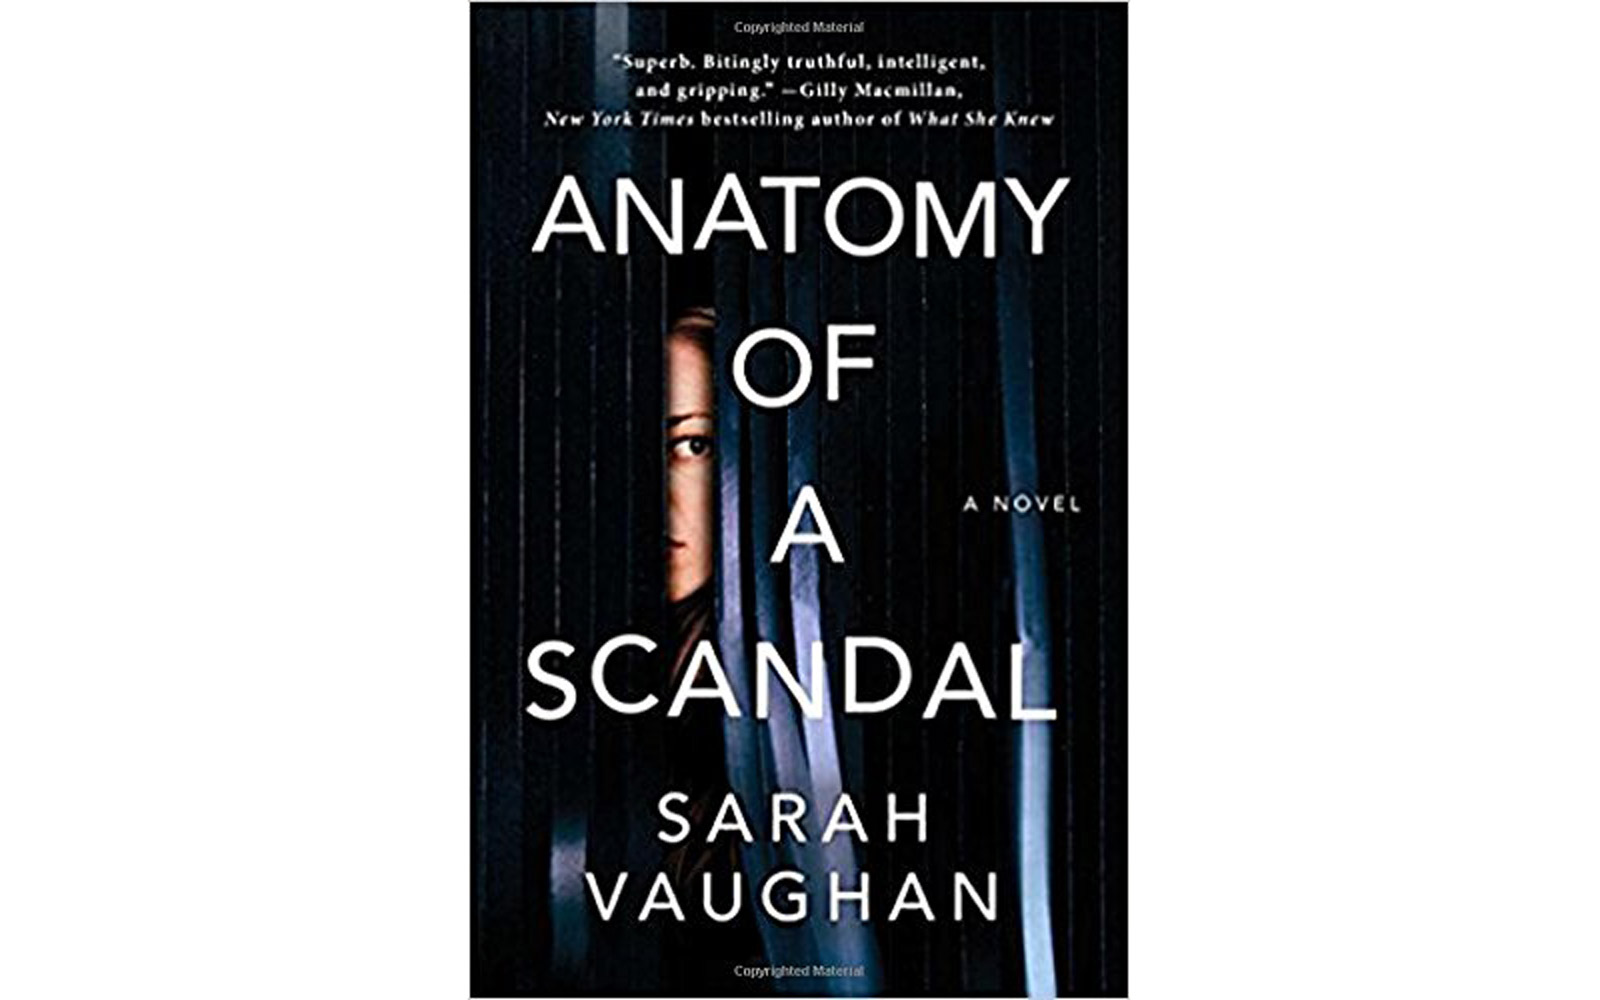 'Anatomy of a Scandal' by Sarah Vaughan